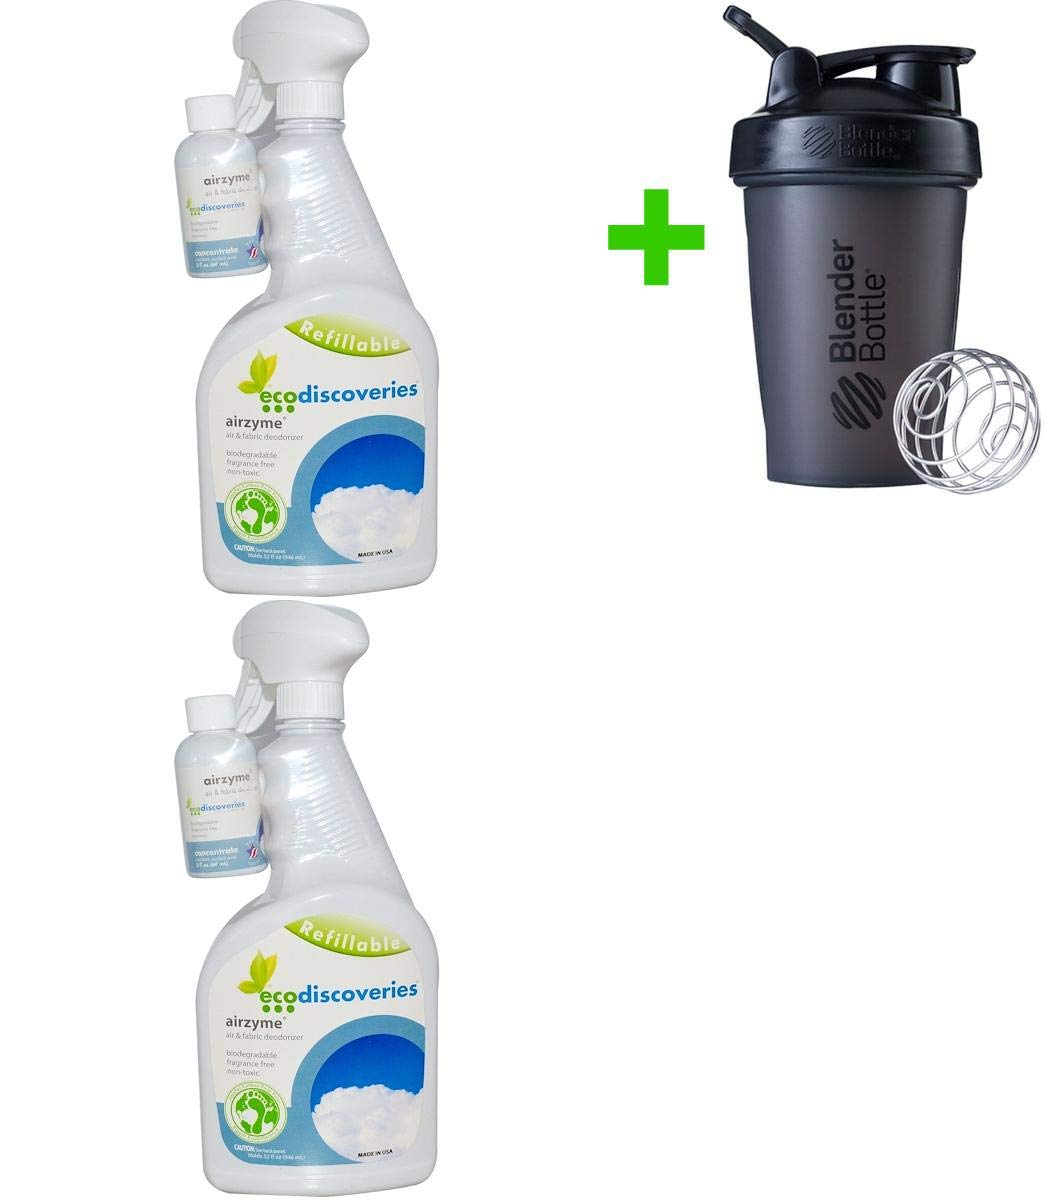 ecoDiscoveries, Airzyme, Air & Fabric Deodorizer, 2 fl oz (60 ml) Concentrate w/ 1 Spray Bottle(2 Packs)+Sundesa, Blender Bottle, Classic with Loop, 20 oz by ecoDiscoveries (Image #1)